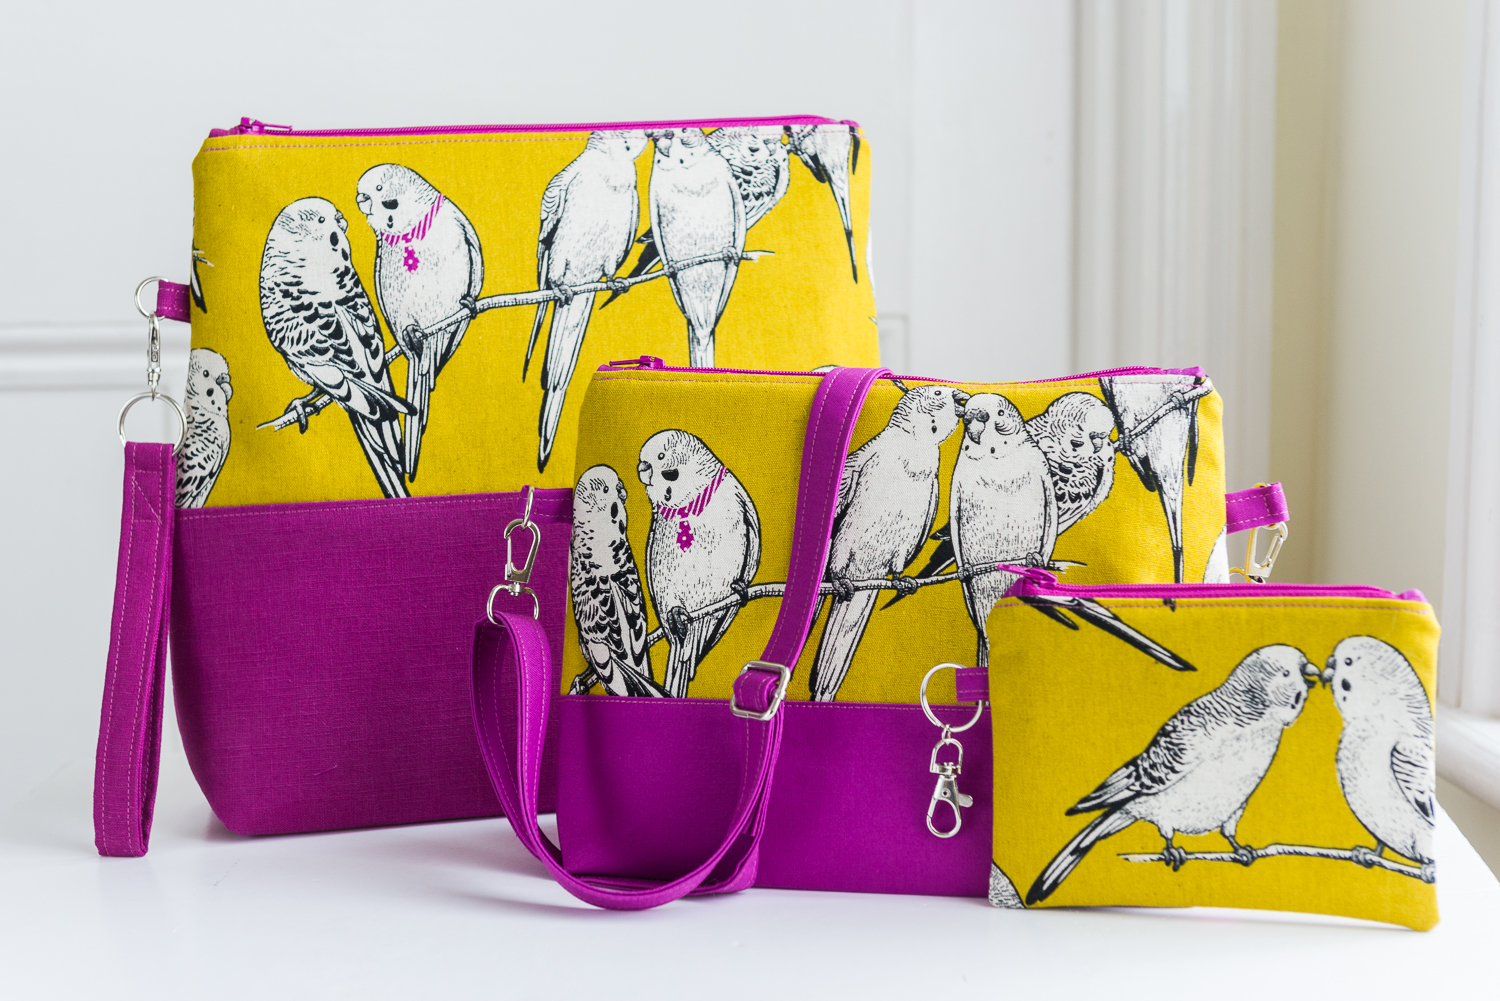 Bags of Budgies